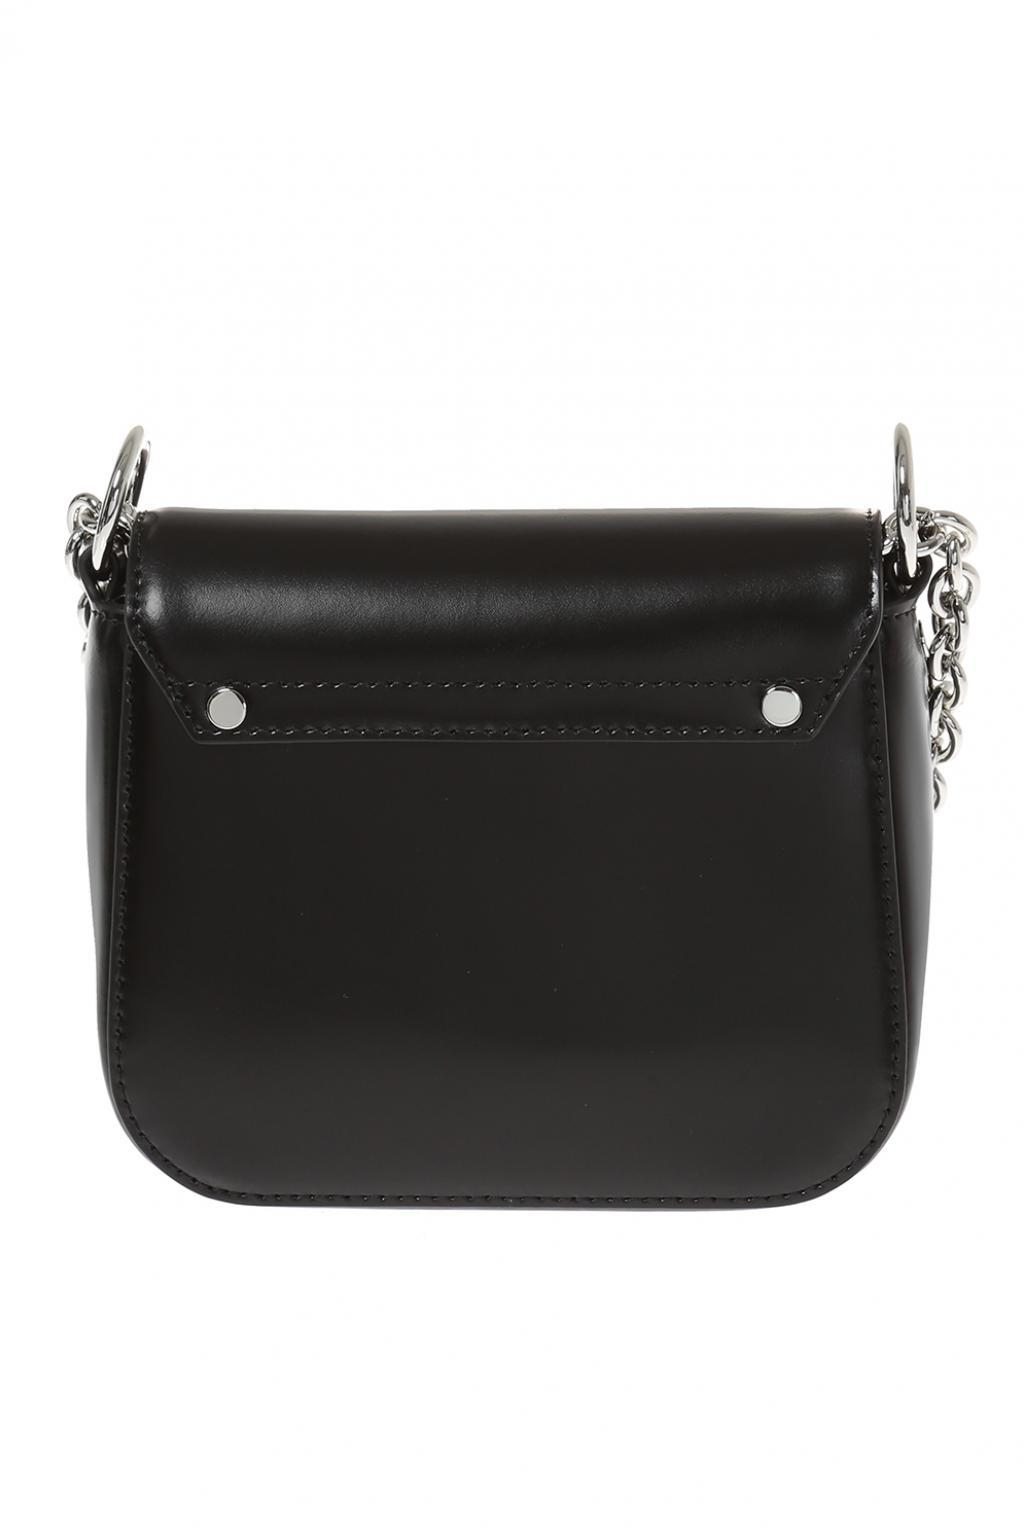 da21bbc82a8c Lyst - Versace Shoulder Bag With Safety-pins in Black